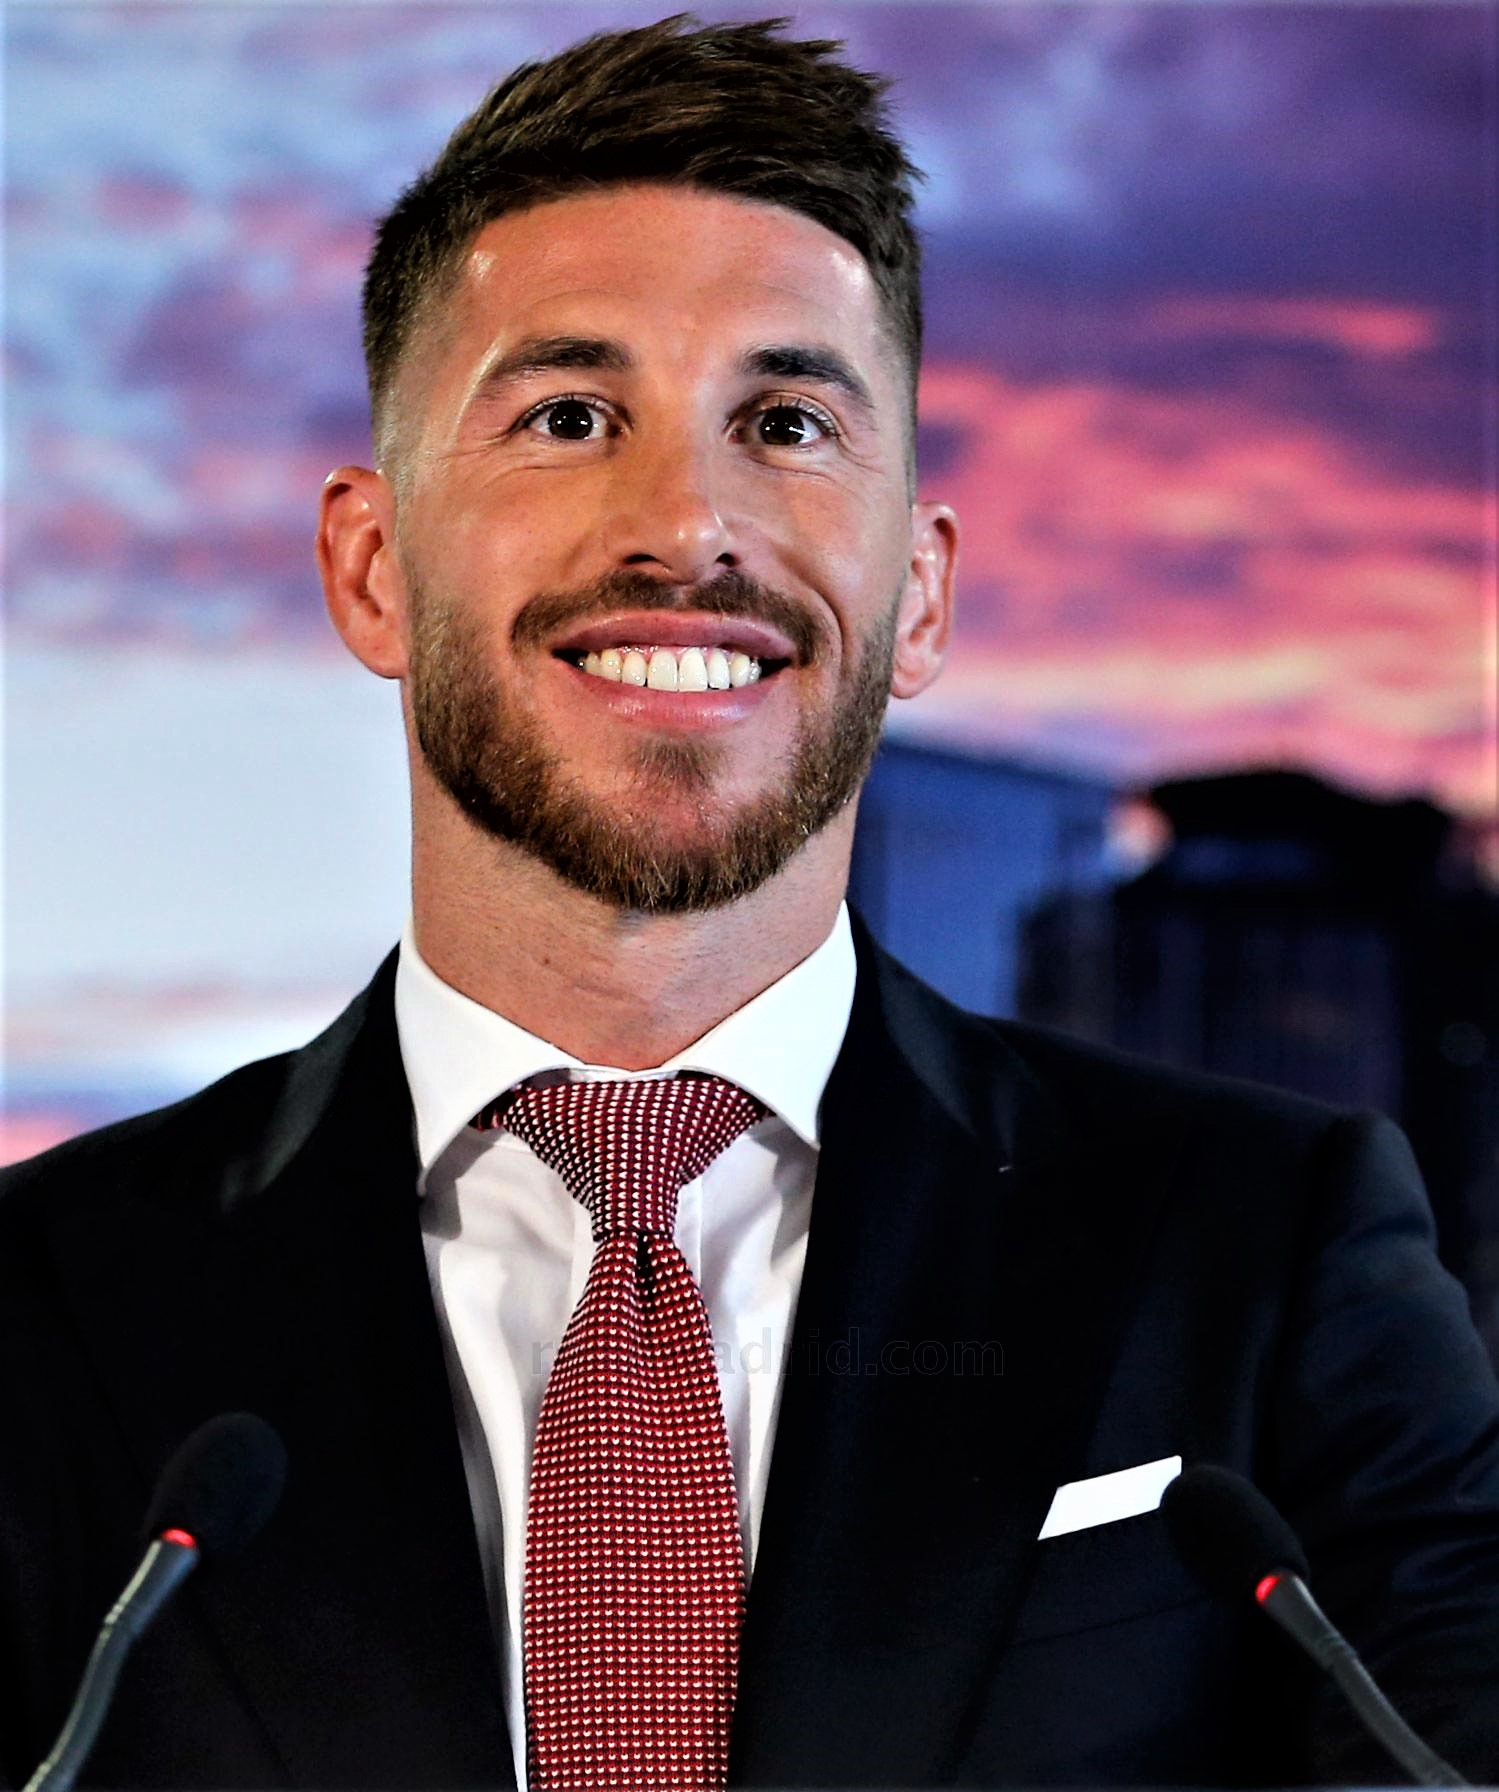 SergioRamos's photo